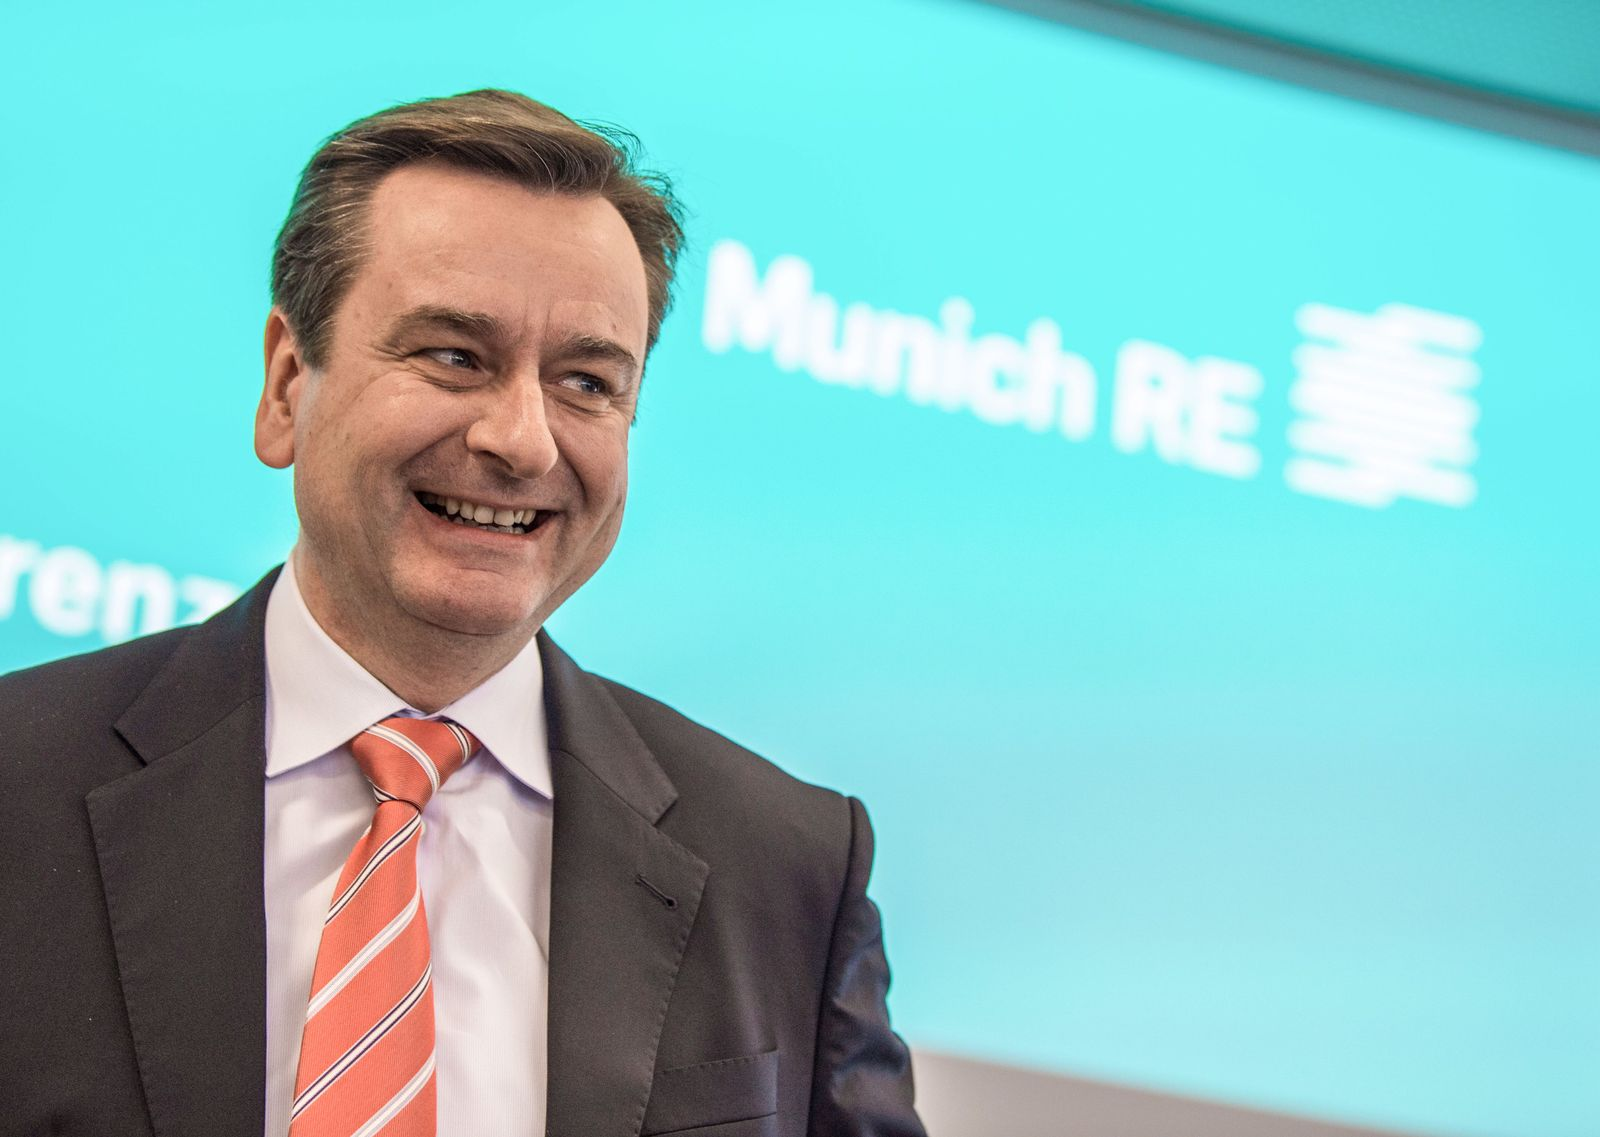 Joachim Wenning / Munich RE